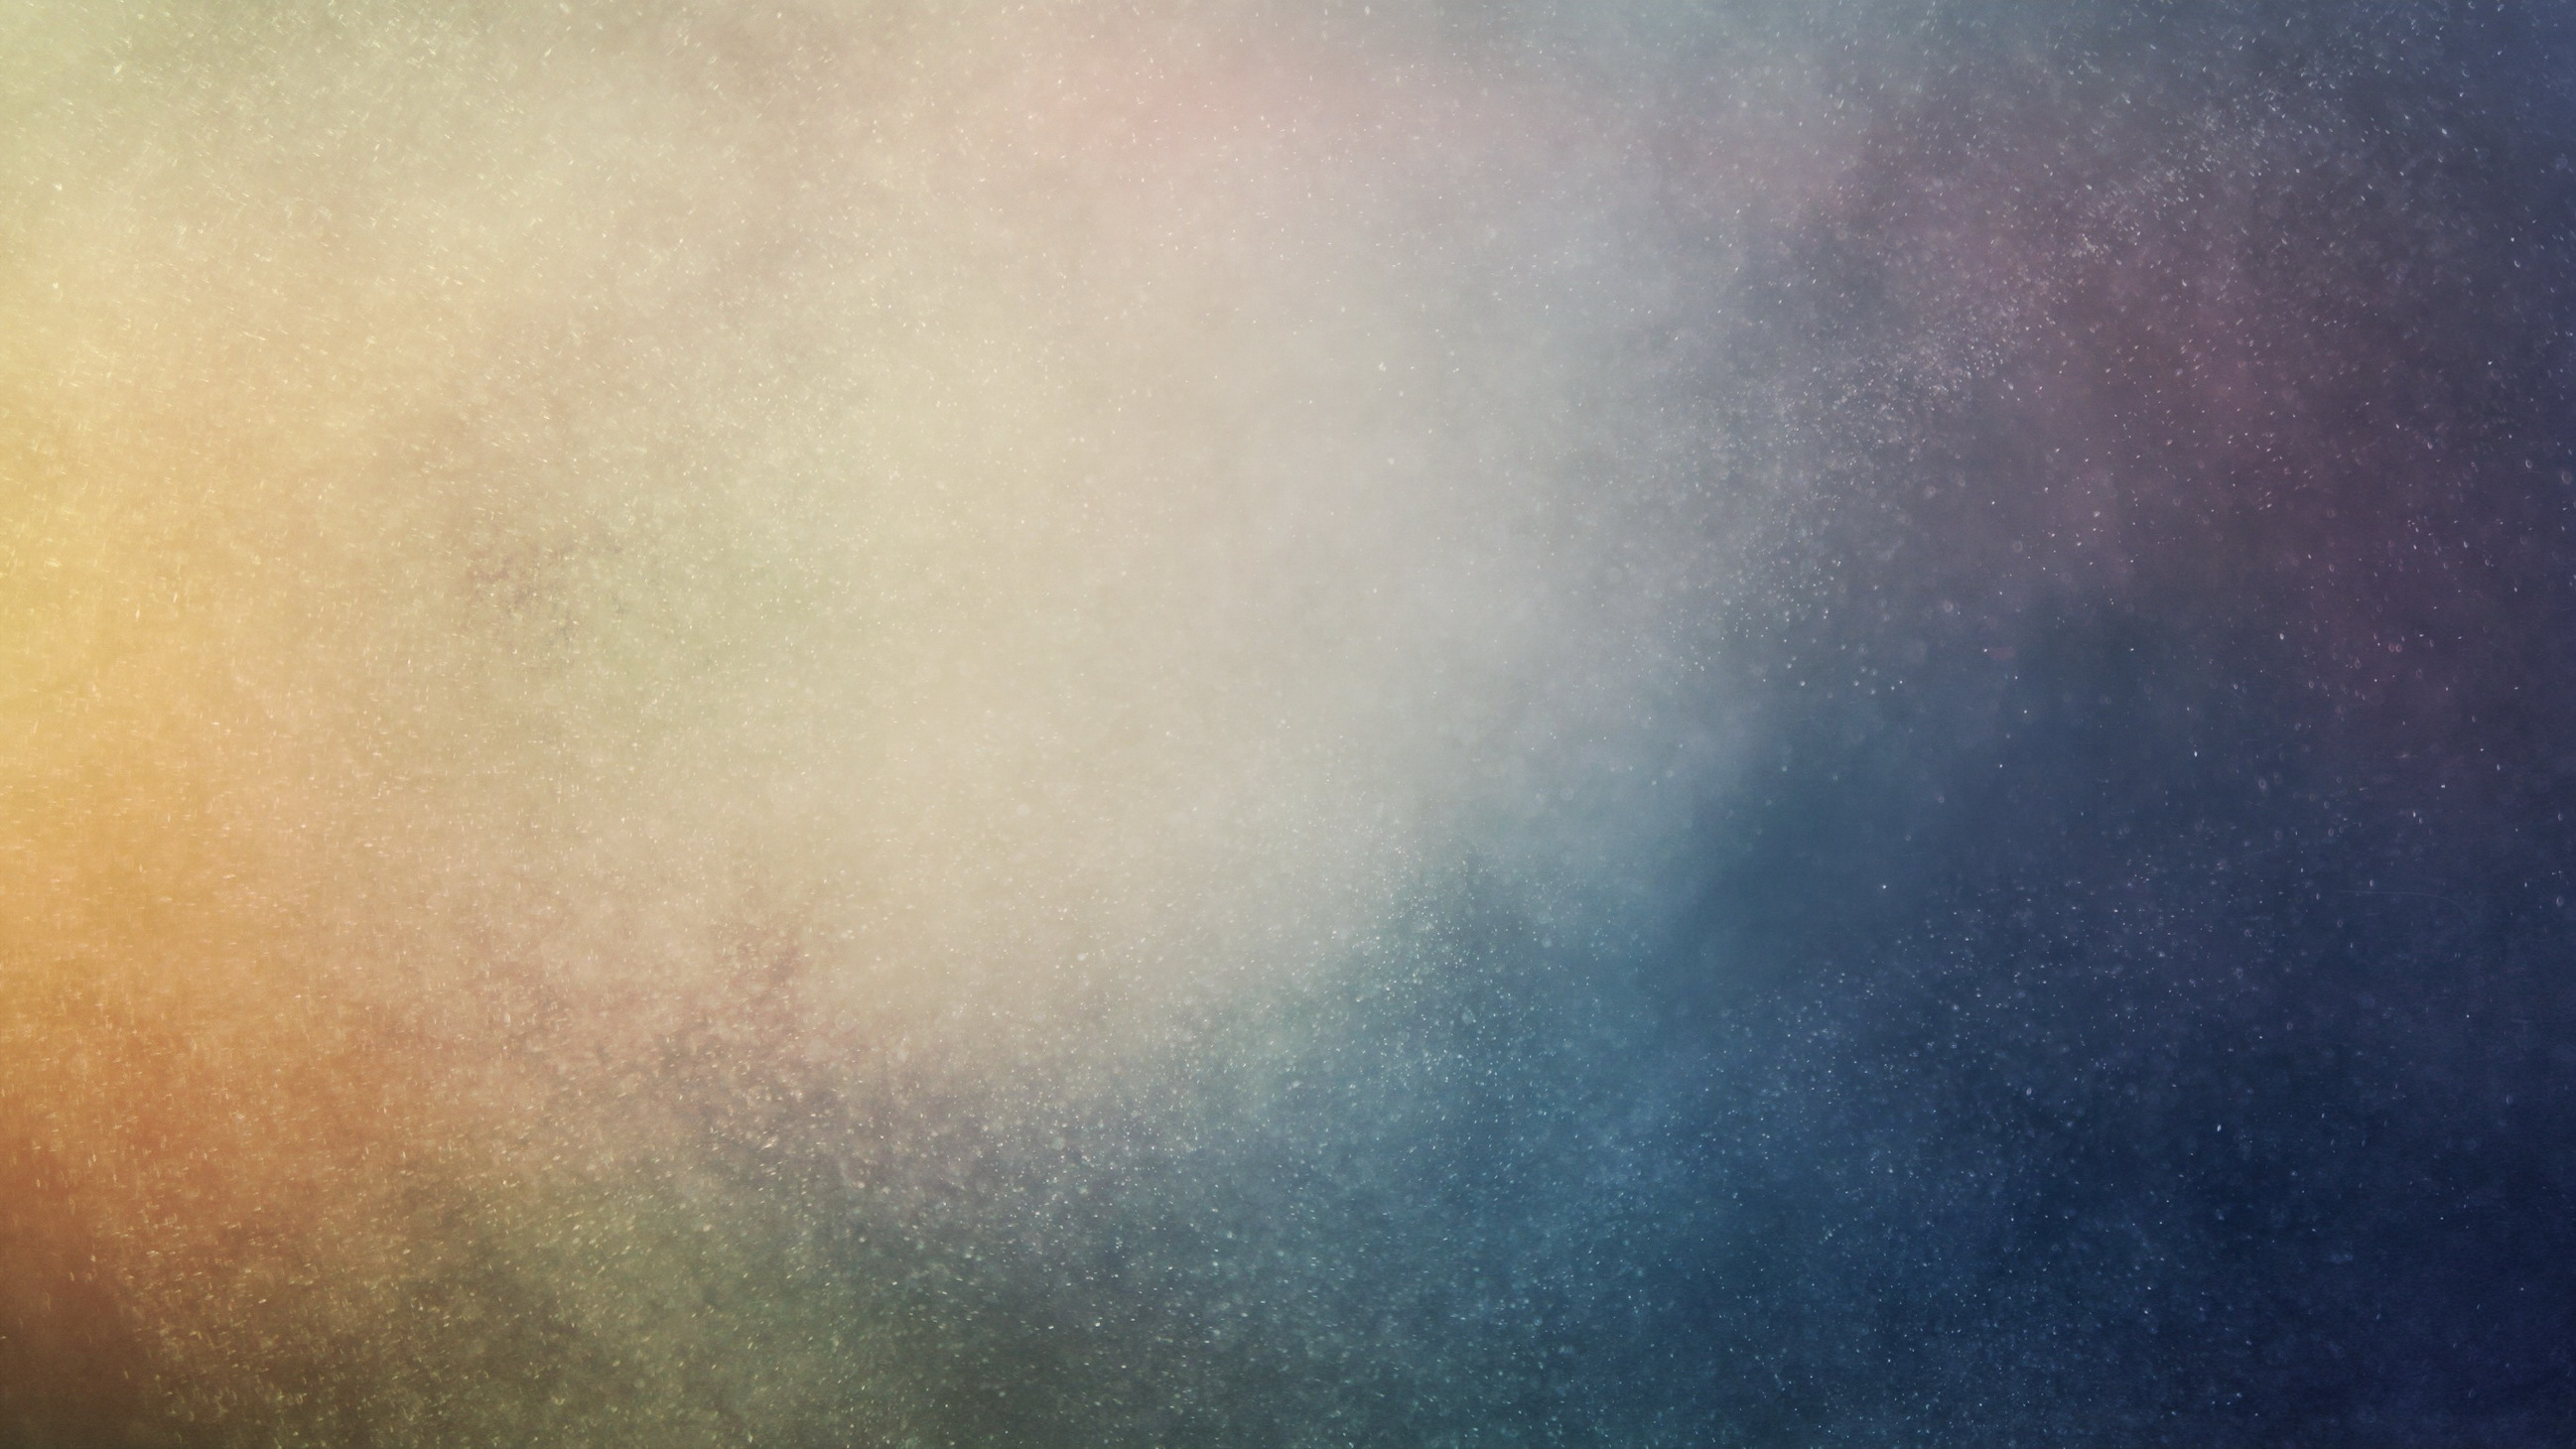 Download Wallpaper Background Texture Dust Hq Wallpapers Section Textures In Resolution 2595x1460